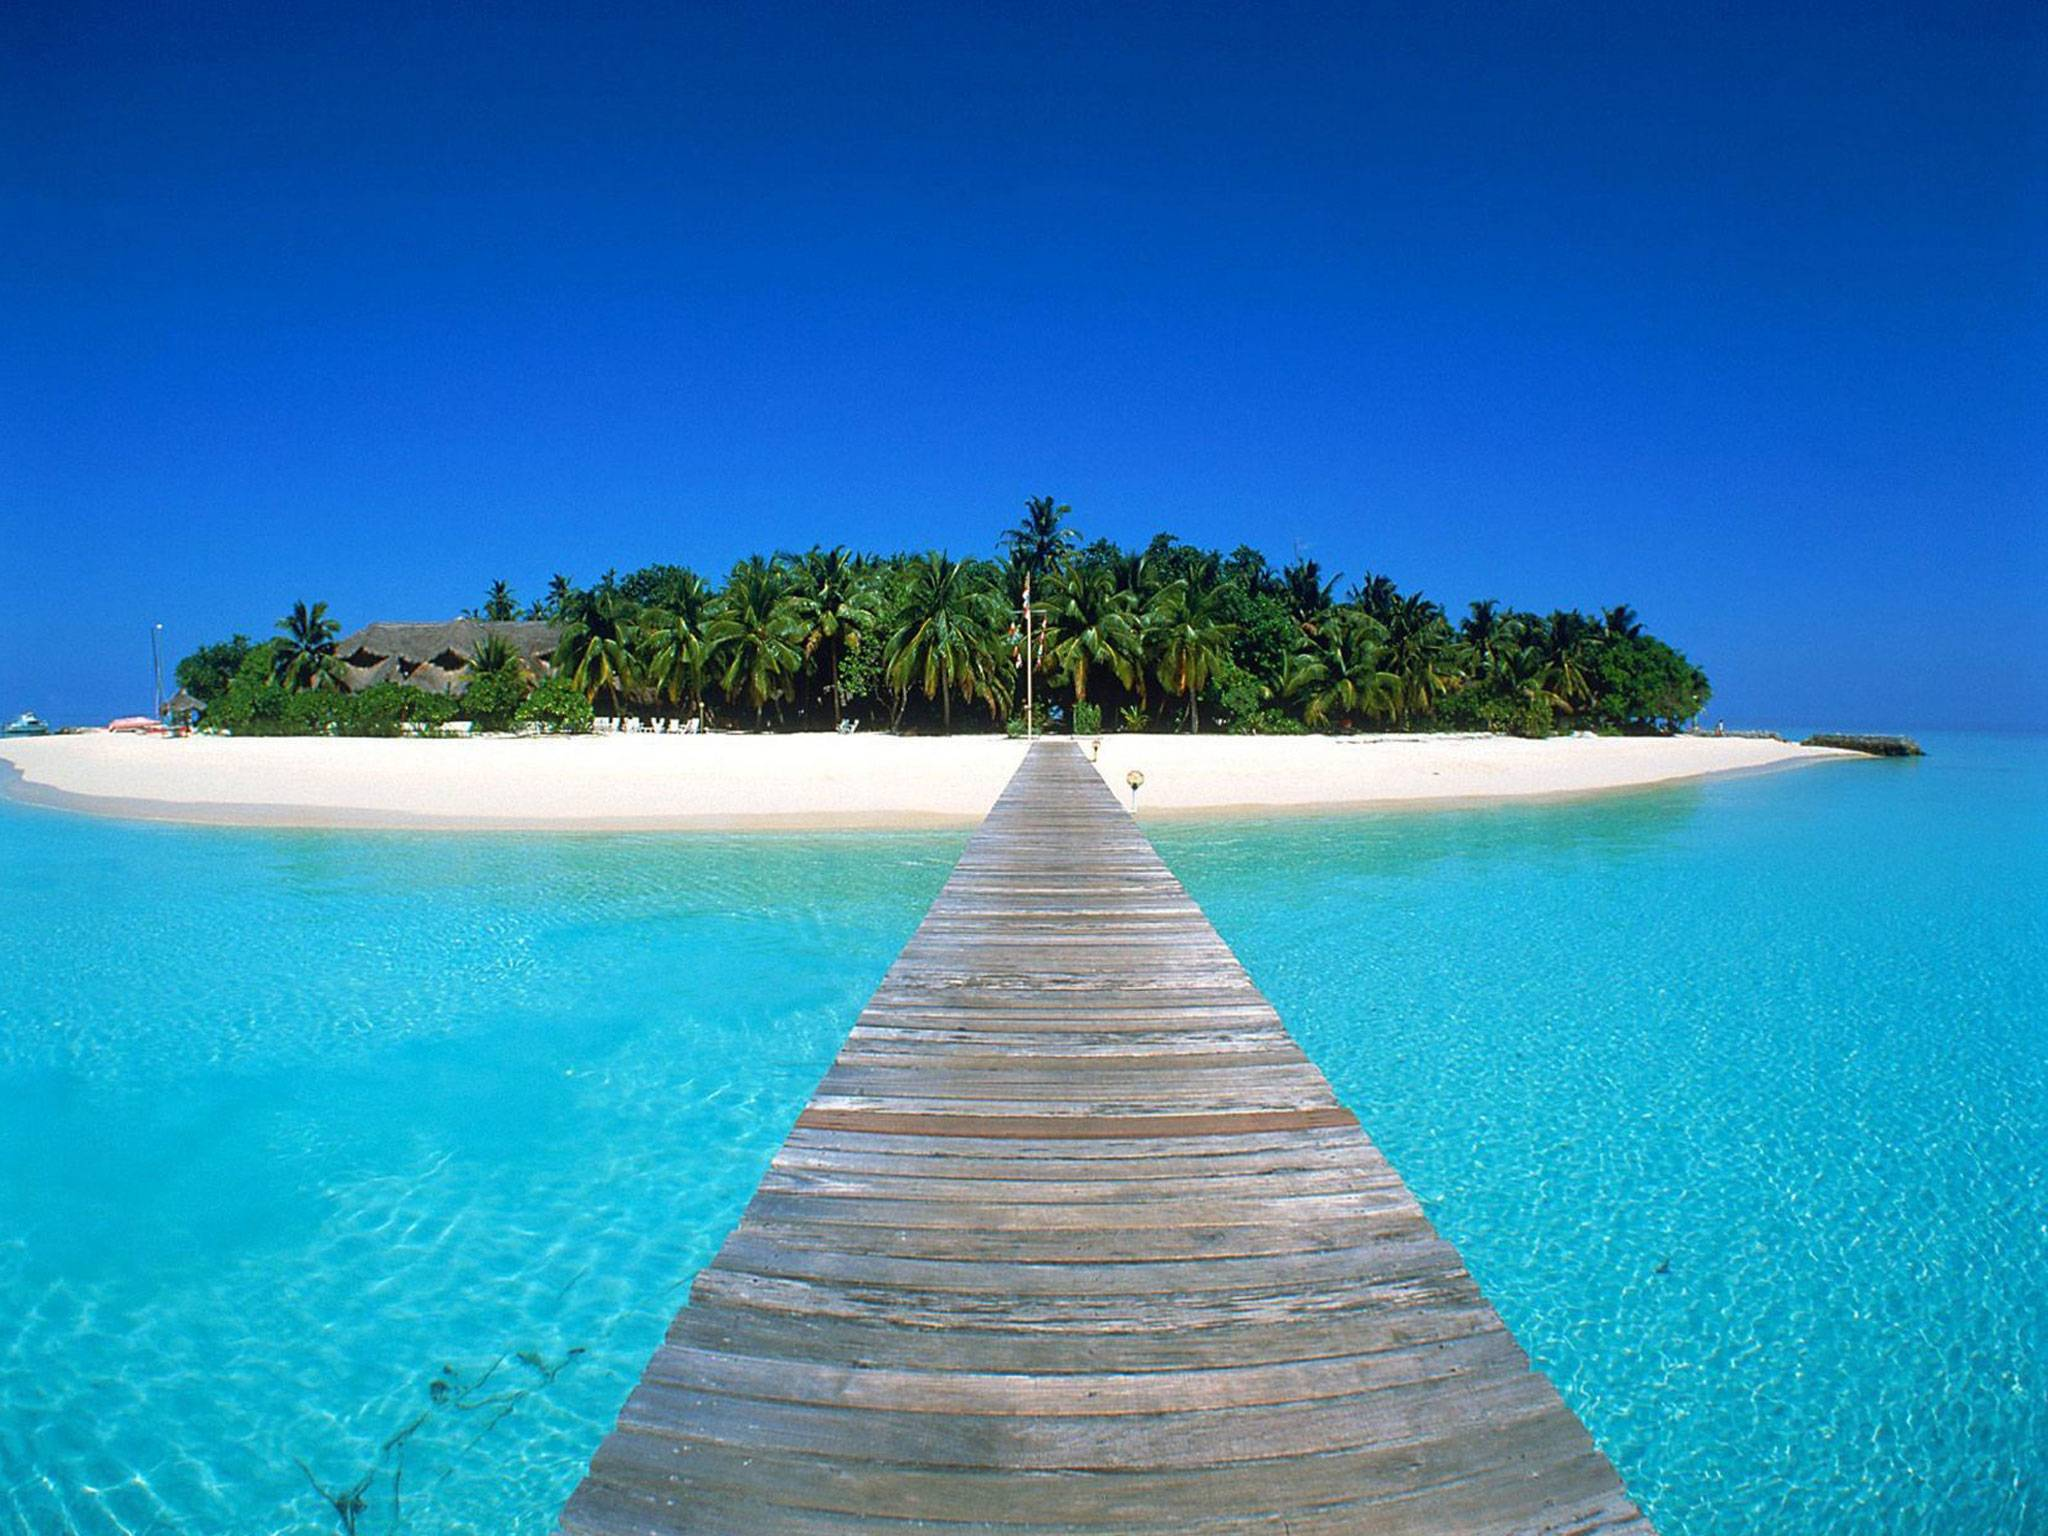 top 10 places to visit, camille newbern, camille hom newbern, the la survival guide, thelasurvivalguide, la survival guide, lasurvivalguide, travel blog, travel blogger, top 10 travel, top 10 vacation, top 10 places, maldives, the maldives, trip maldives, best snorkeling, best diving, best scuba, best scuba diving, maldives snorkel, maldives bungalows, maldives scuba, maldives diving, travel maldives, sri lanka, travel sri lanka, vacation sri lanka, visit sri lanka, visit maldives, sri lanka hike, sri lanka safari, sri lanka elephant, sri lanka travel, buenos aires, buenos aires argentina, visit buenos aires, visit argentina, travel buenos aires, travel argentina, palermo argentina, palermo buenos aires, kauai, kauai hawaii, best hawaii, best island, best vacation, kauai visit, kauai vacation, kauai travel, beautiful kauai, bali, bali indonesia, visit bali, travel bali, vacation bali